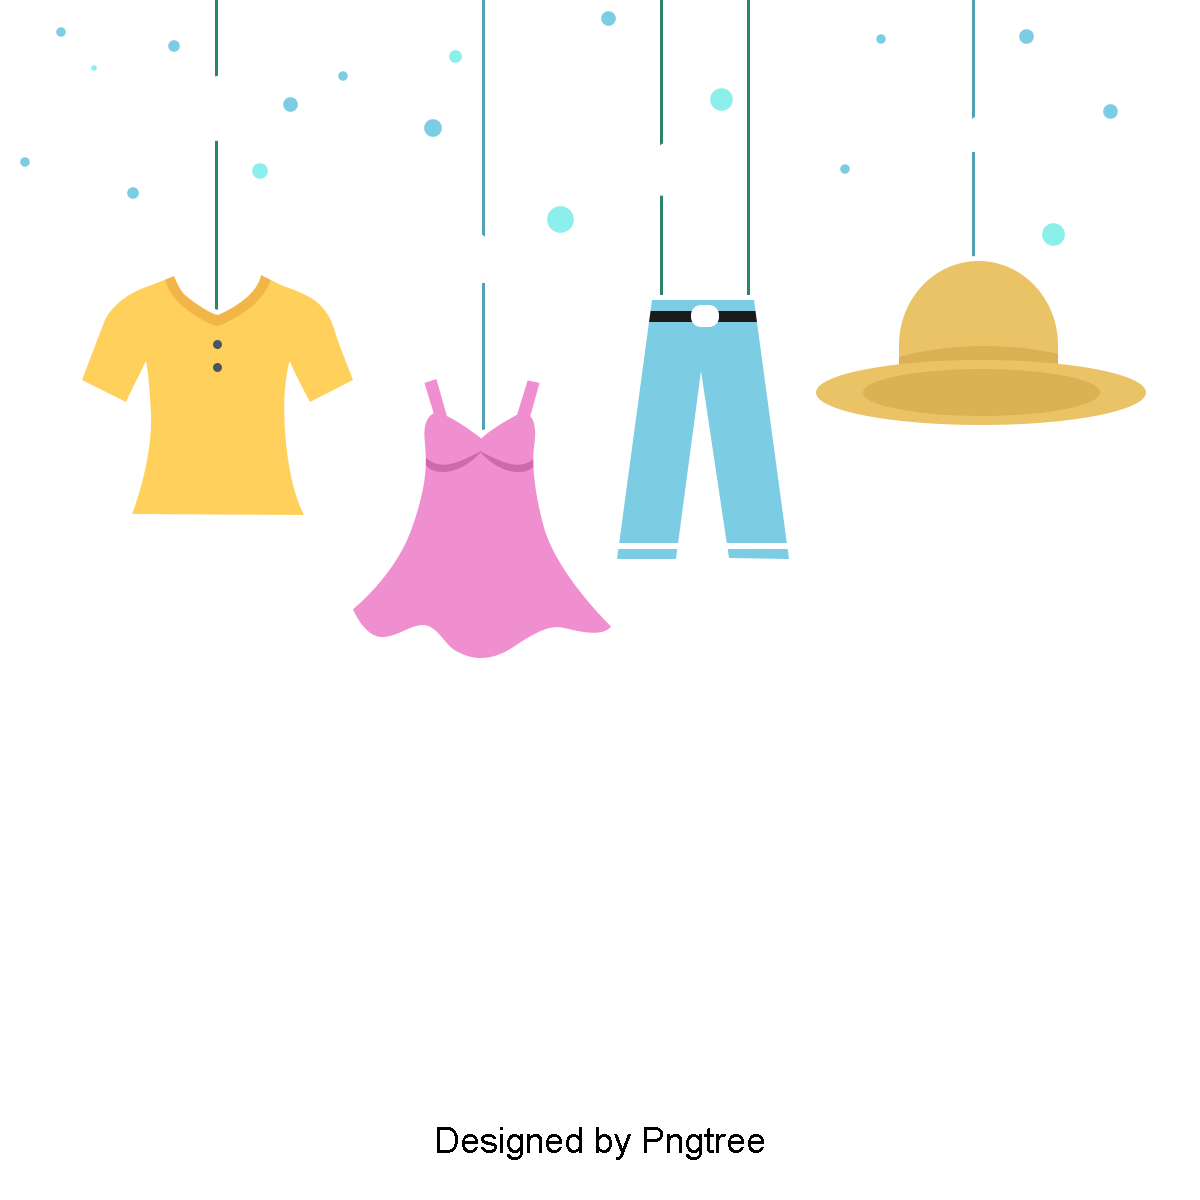 Clothes Png, Vector, PSD, and Clipart With Transparent Background.